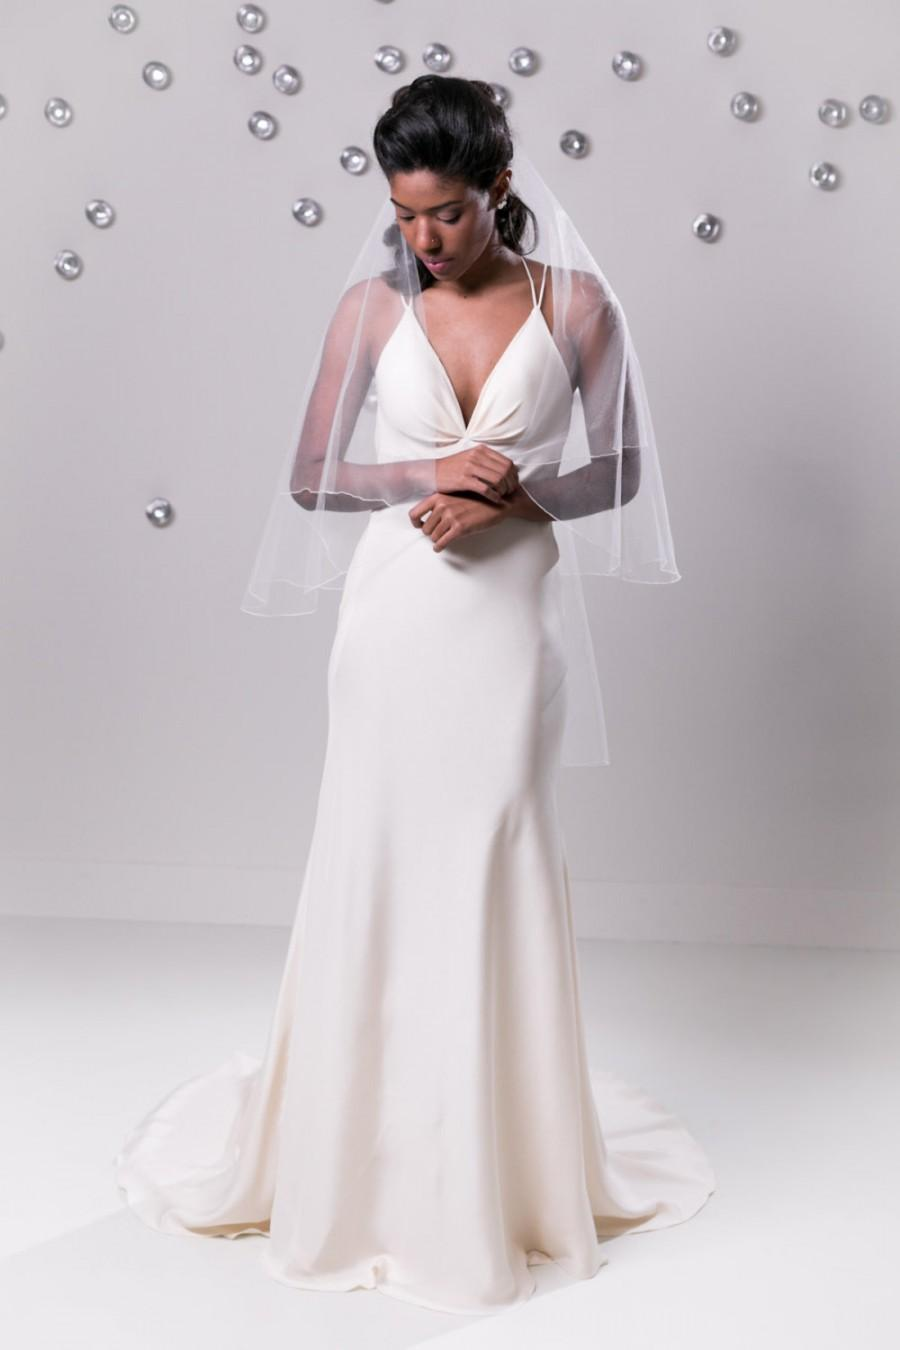 Backless Wedding Dress Old Hollywood Glamour Gown Silk Crepe Gown ...